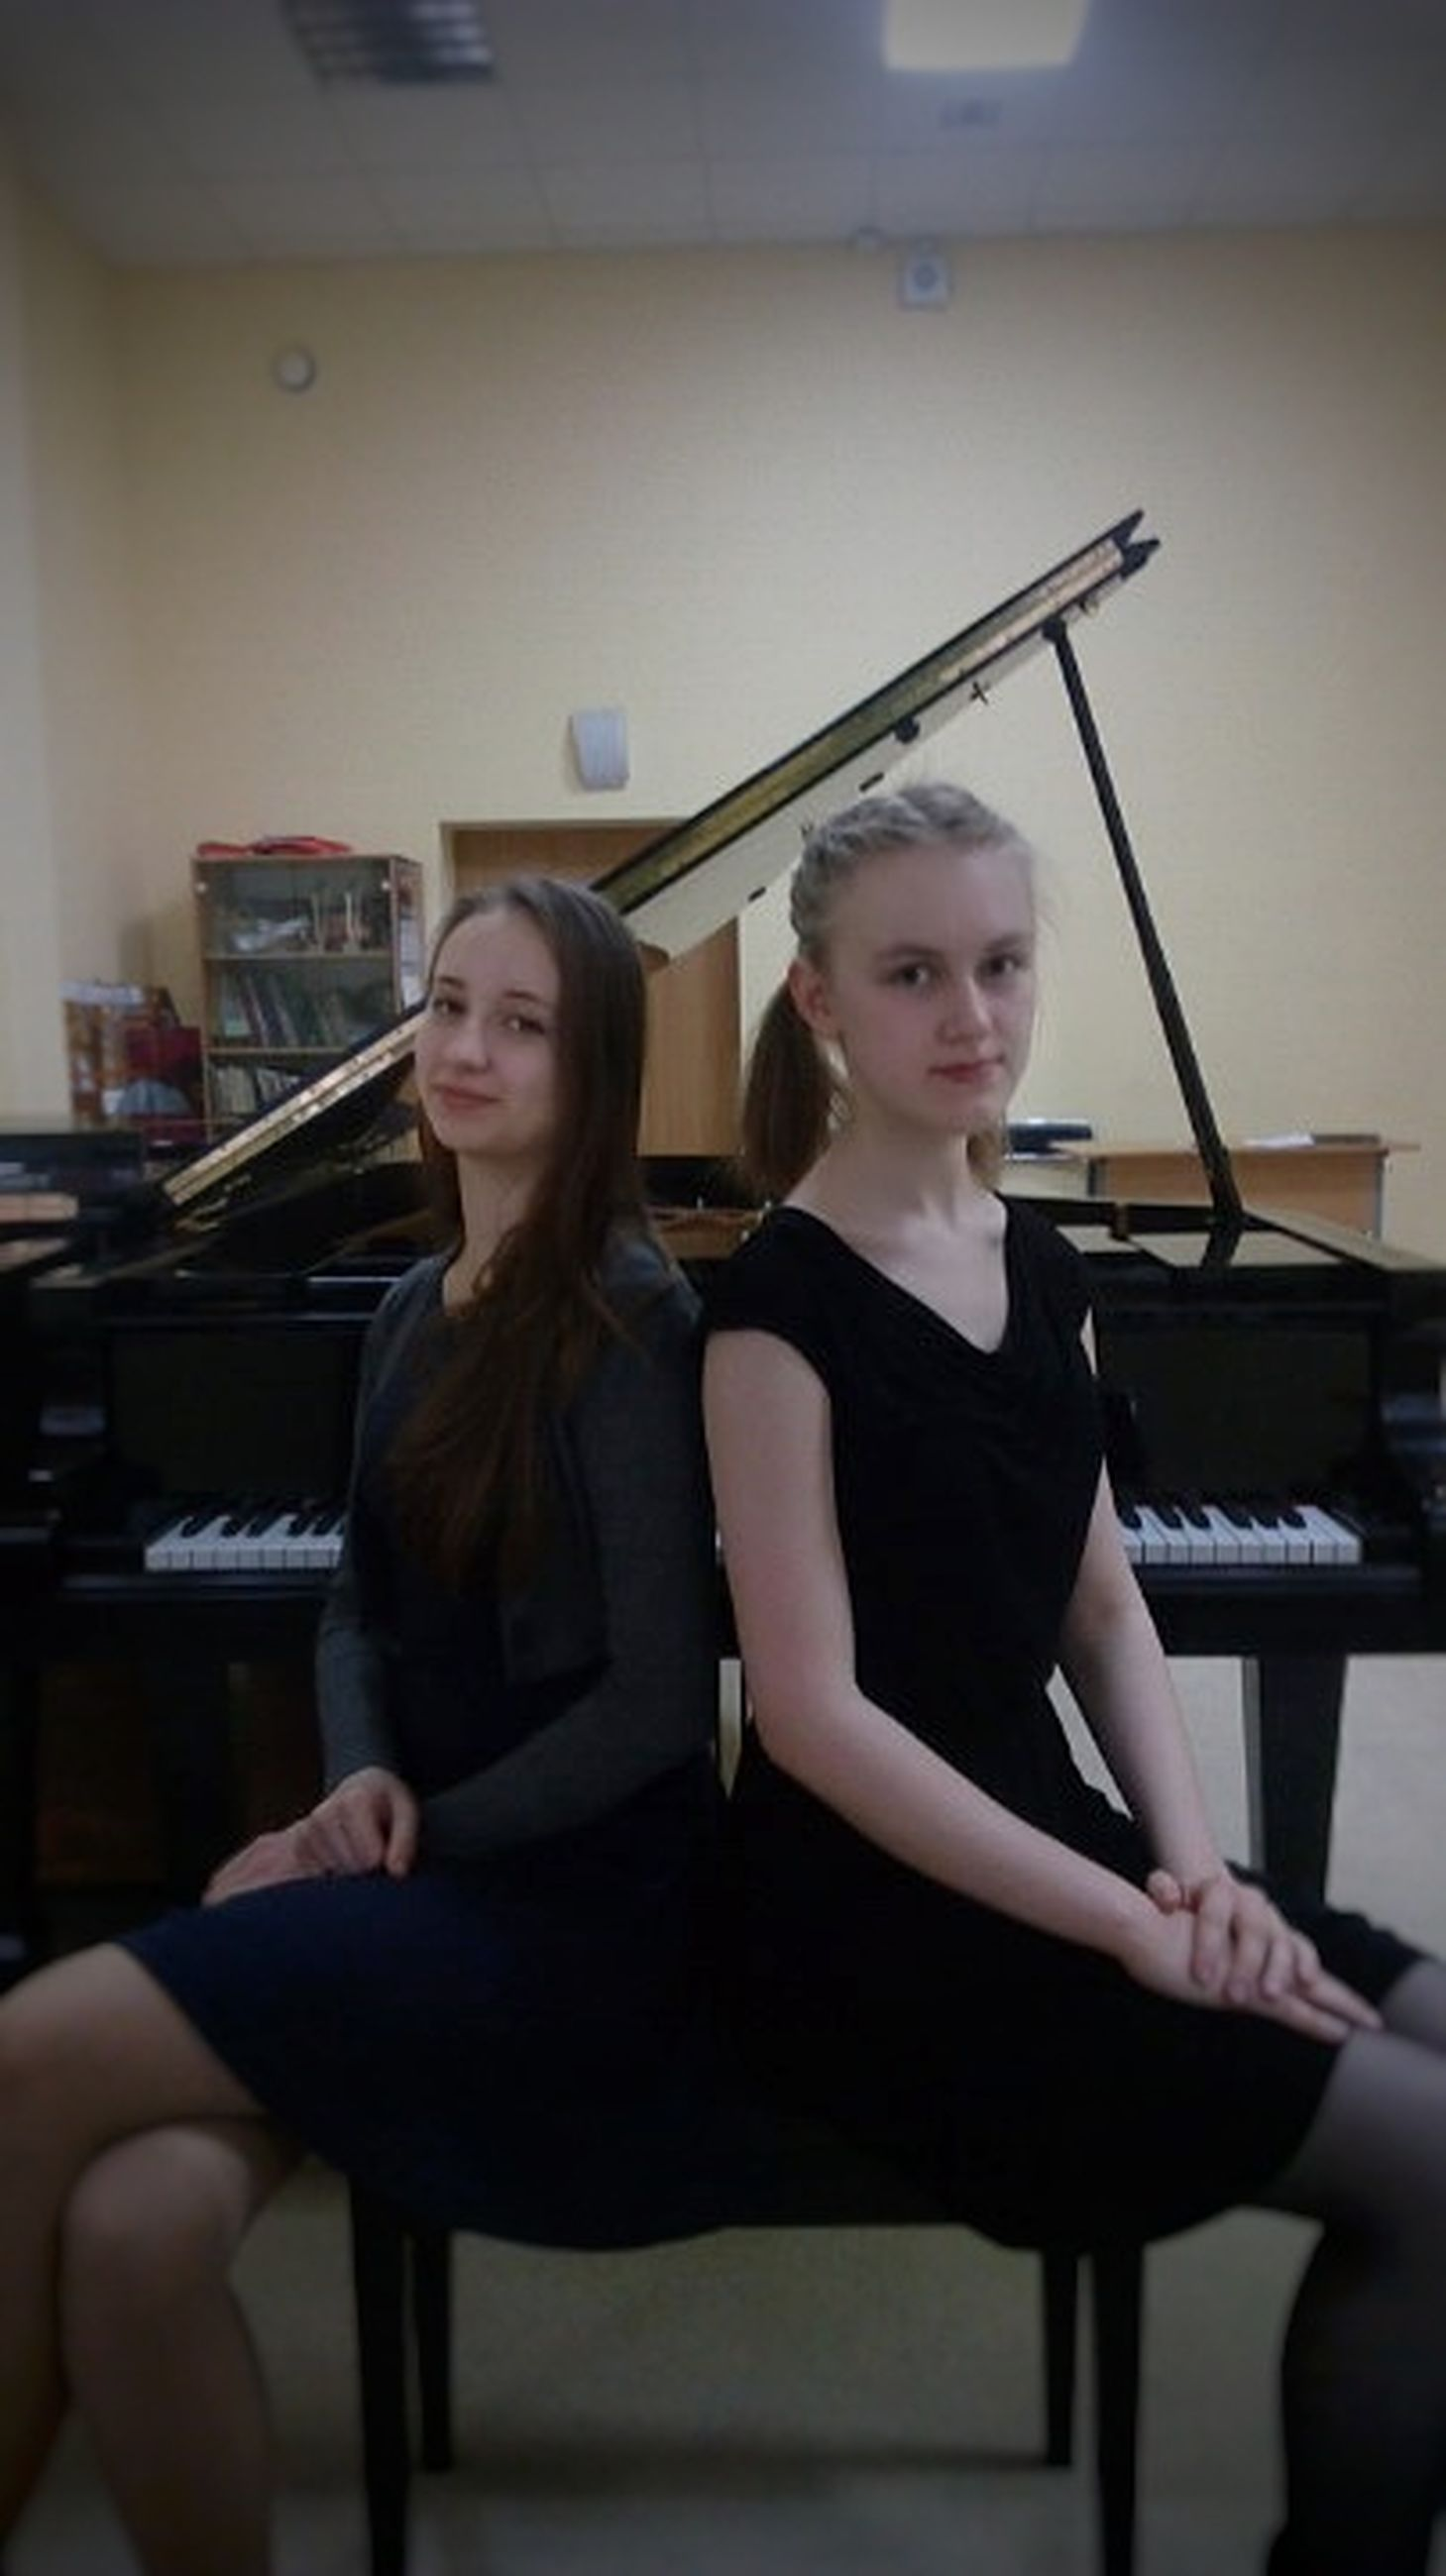 two people, sitting, practicing, arts culture and entertainment, indoors, skill, music, piano, adults only, playing, performance, people, only women, musician, bonding, adult, women, pianist, togetherness, performing arts event, smiling, young adult, day